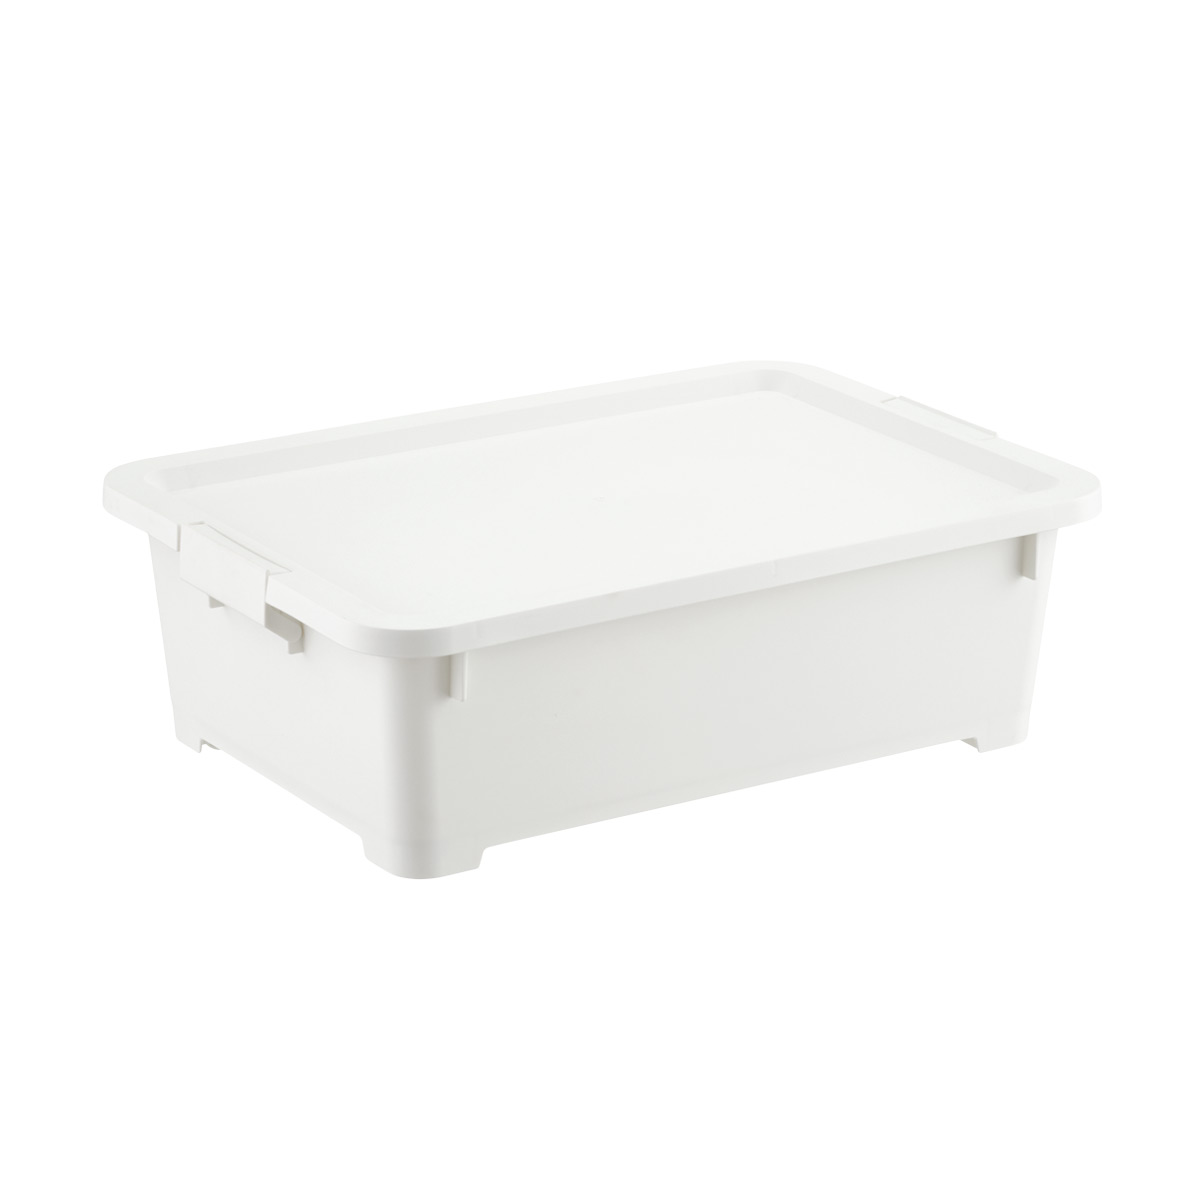 White Rolling Plastic Storage Totes  sc 1 st  The Container Store & White Rolling Plastic Storage Totes | The Container Store